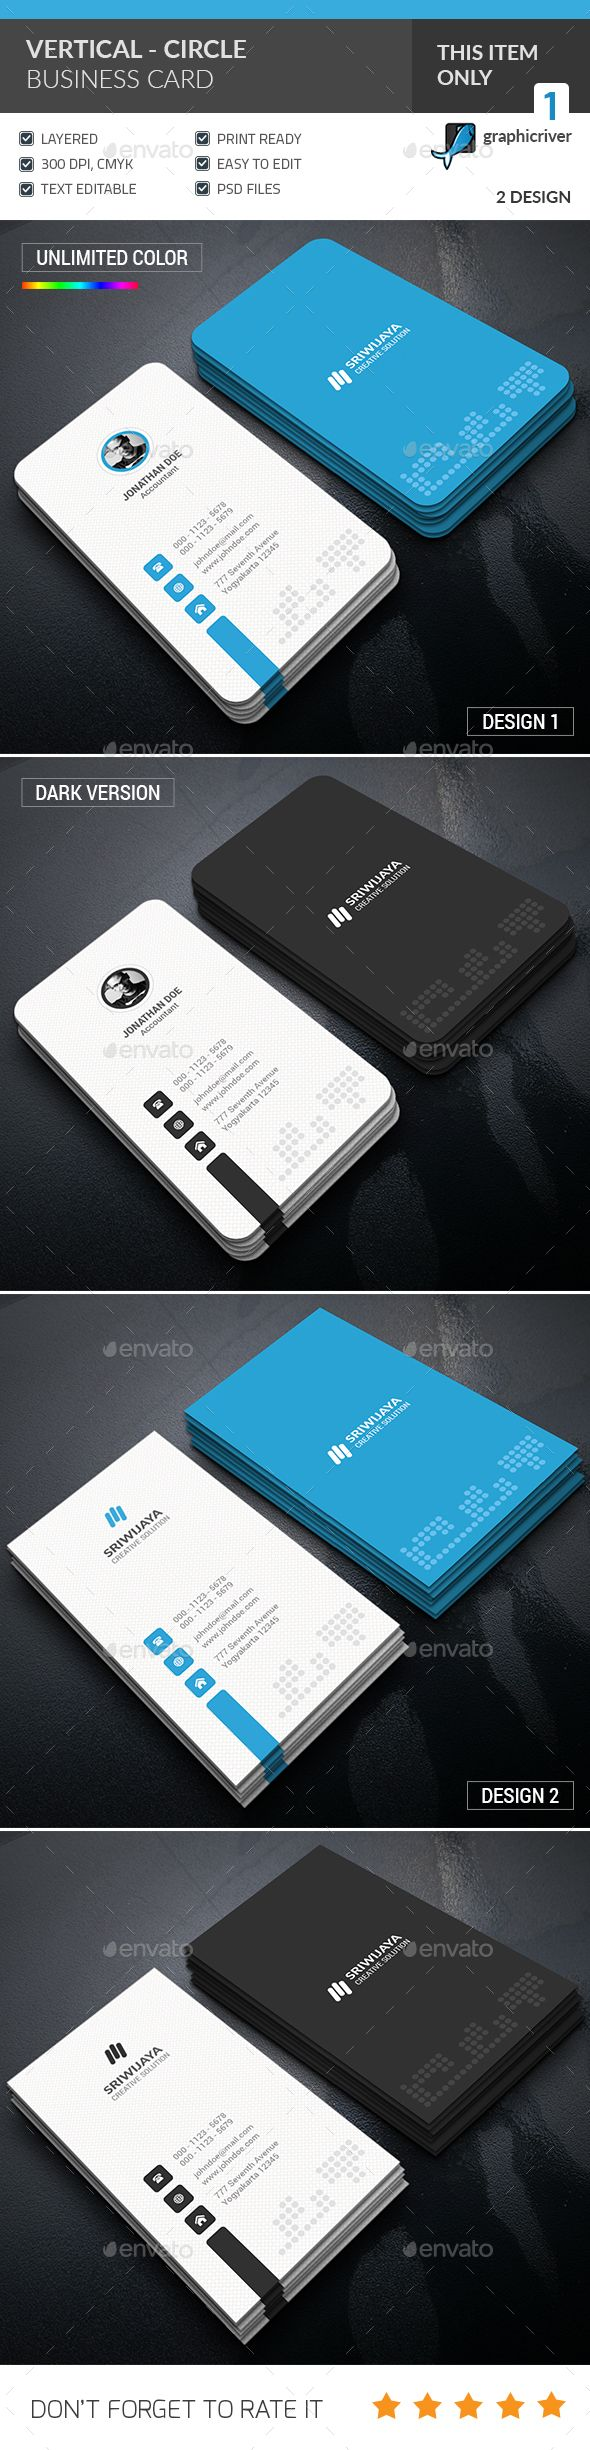 Vertical Circle Business Card Template PSD. Download here: https://graphicriver.net/item/vertical-circle-business-card-/17415411?ref=ksioks